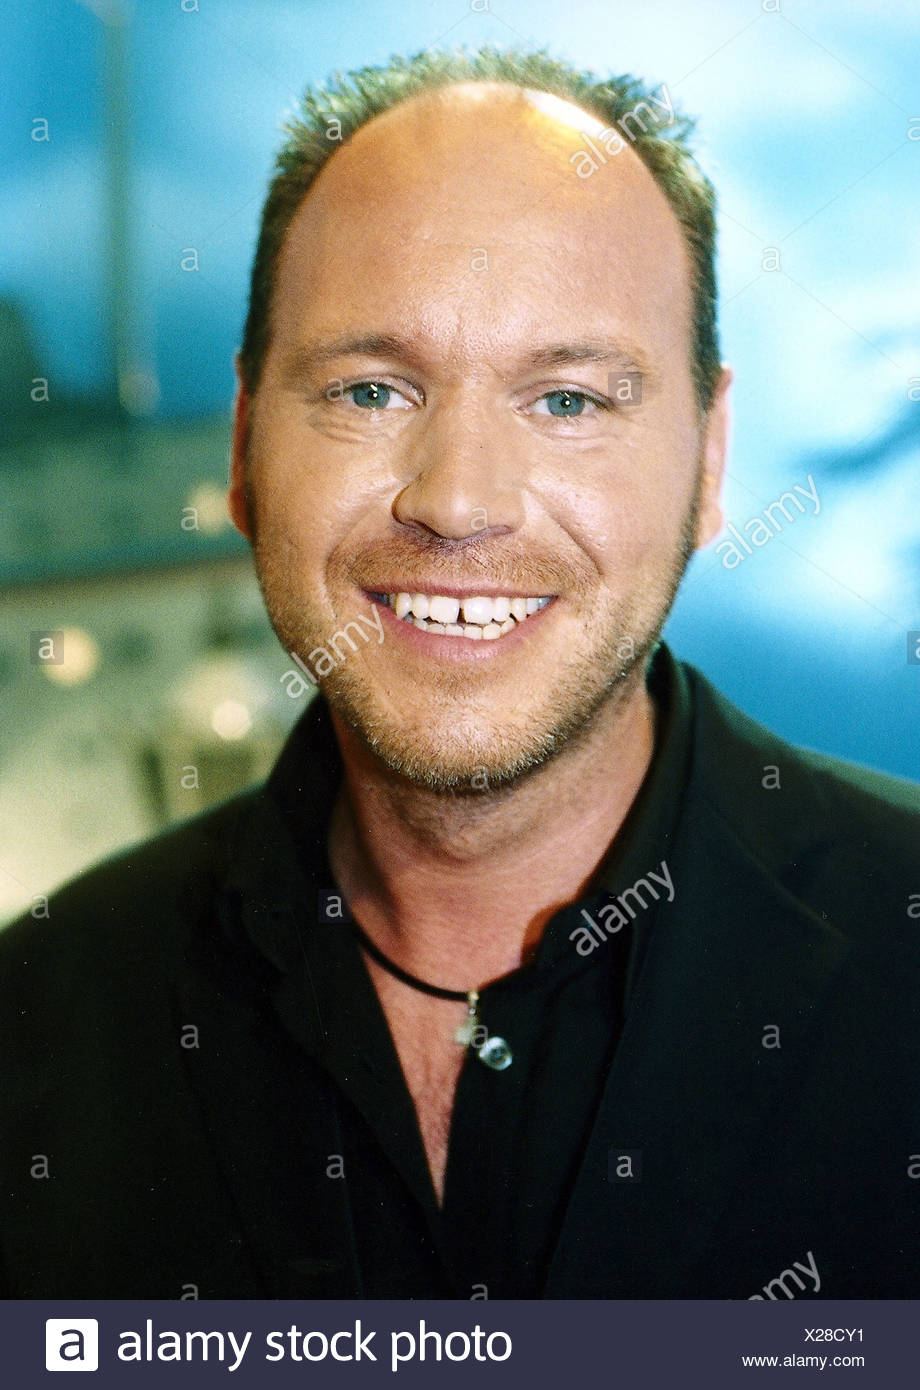 Henning, Olaf, * 14.3.1968, German singer, 'ZDF Sommer Hit Festival', portrait, 2002, Additional-Rights-Clearances-NA - Stock Image